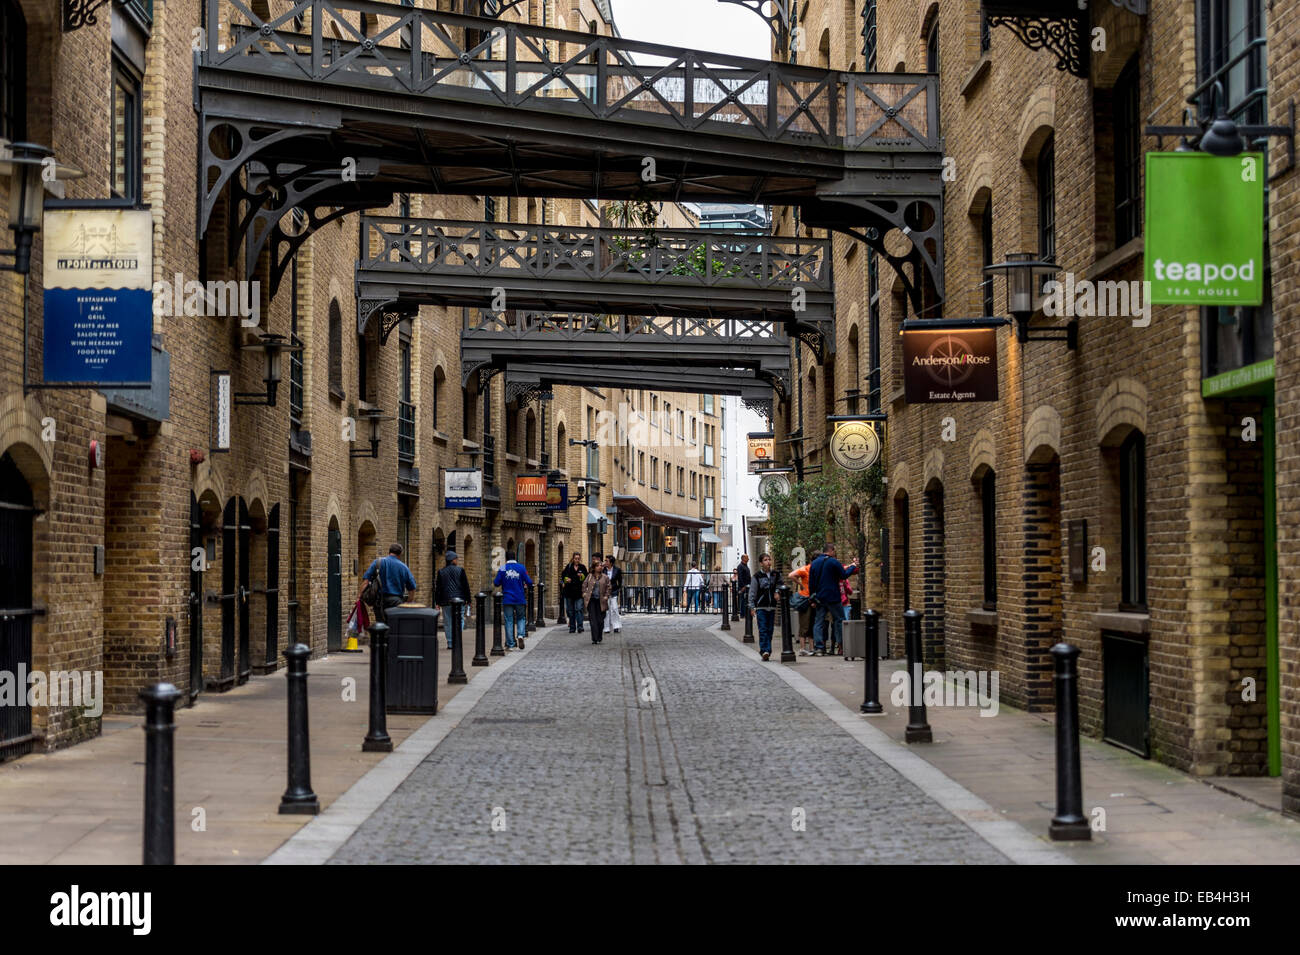 Converted warehouses in Shad Thames, Bermondsey, South East London, part of the Docklands redevelopment - Stock Image